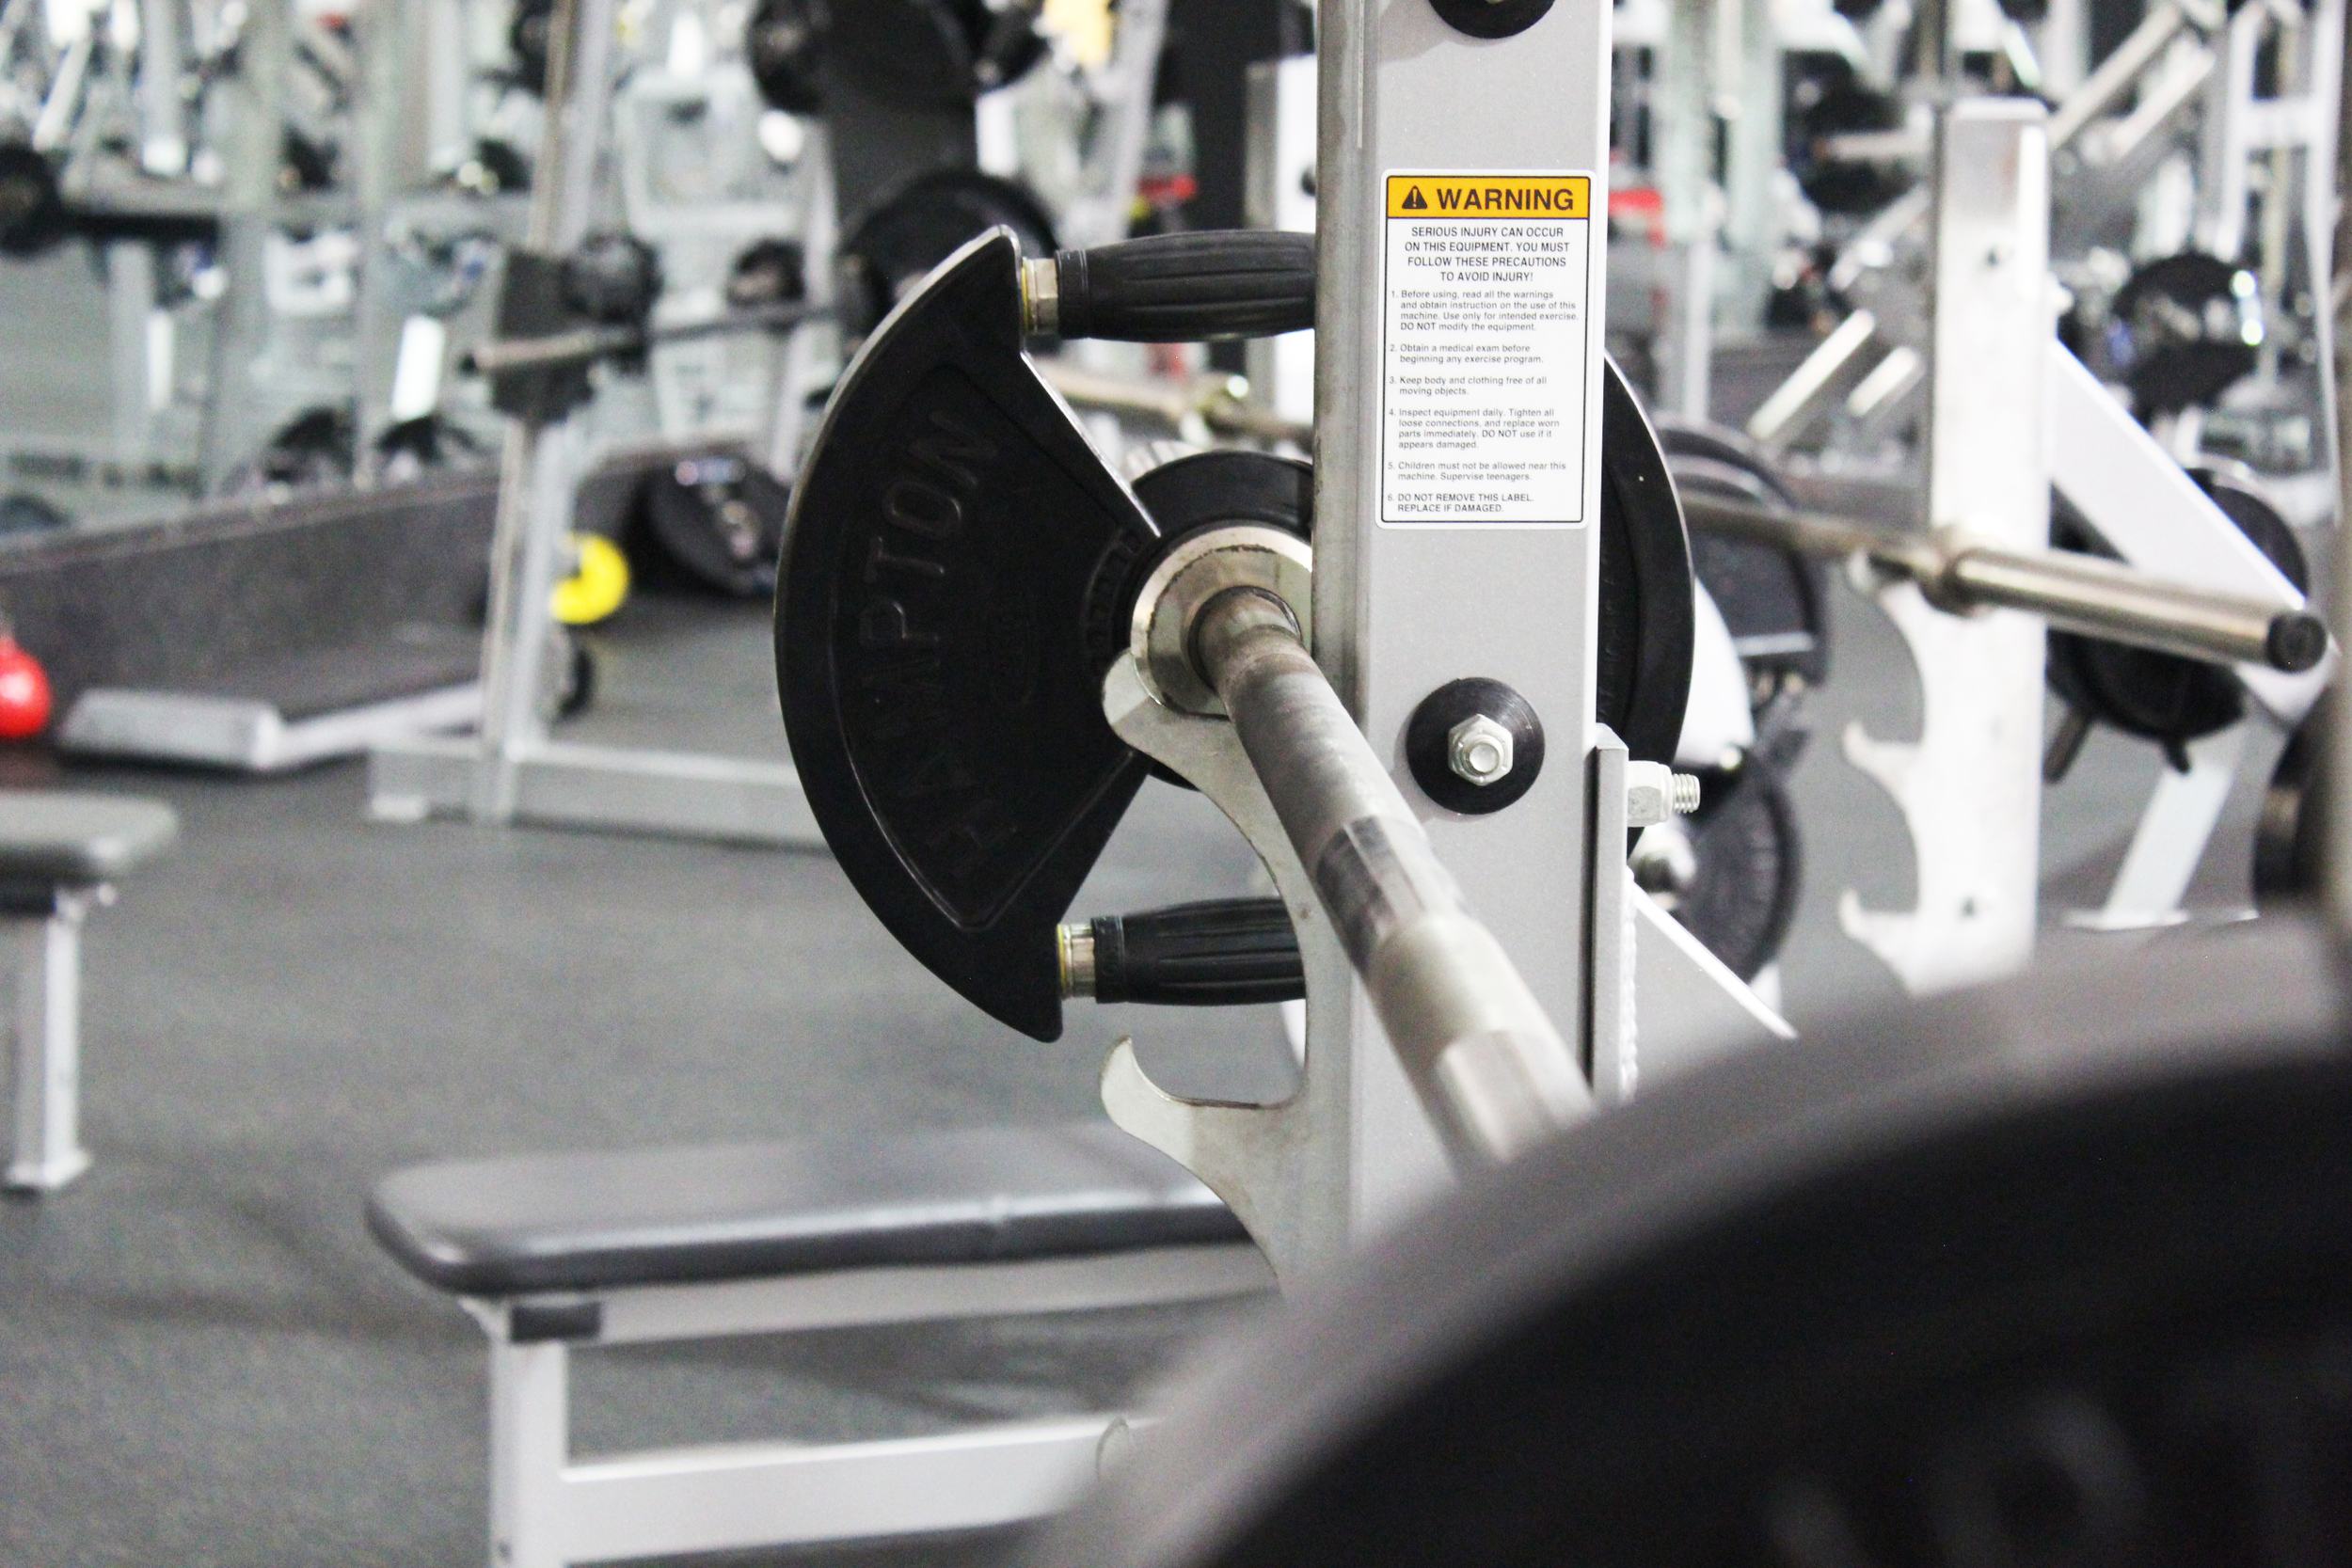 Weight Room  - featuring plates ranging from 2.5-100 lbs and Crossfit equipment